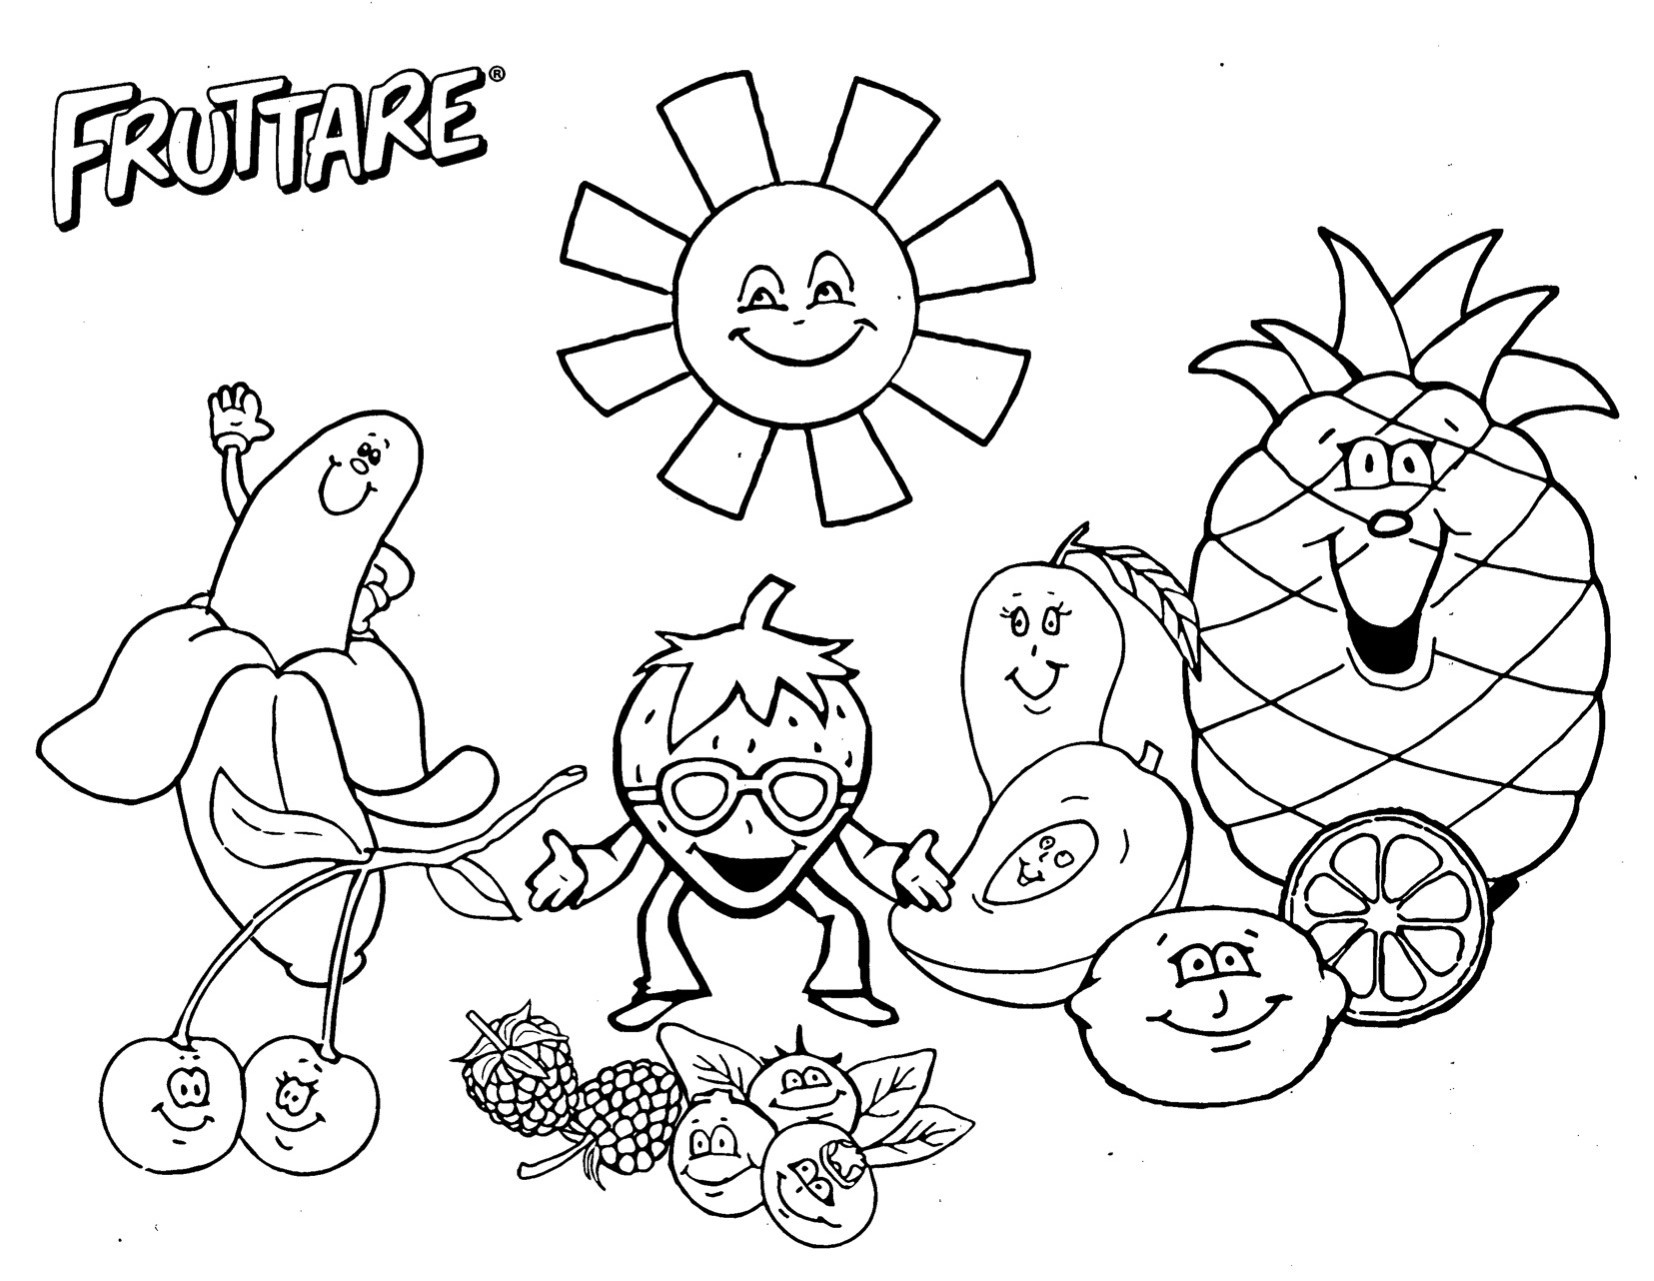 Fruit Salad Coloring Page At Getcolorings